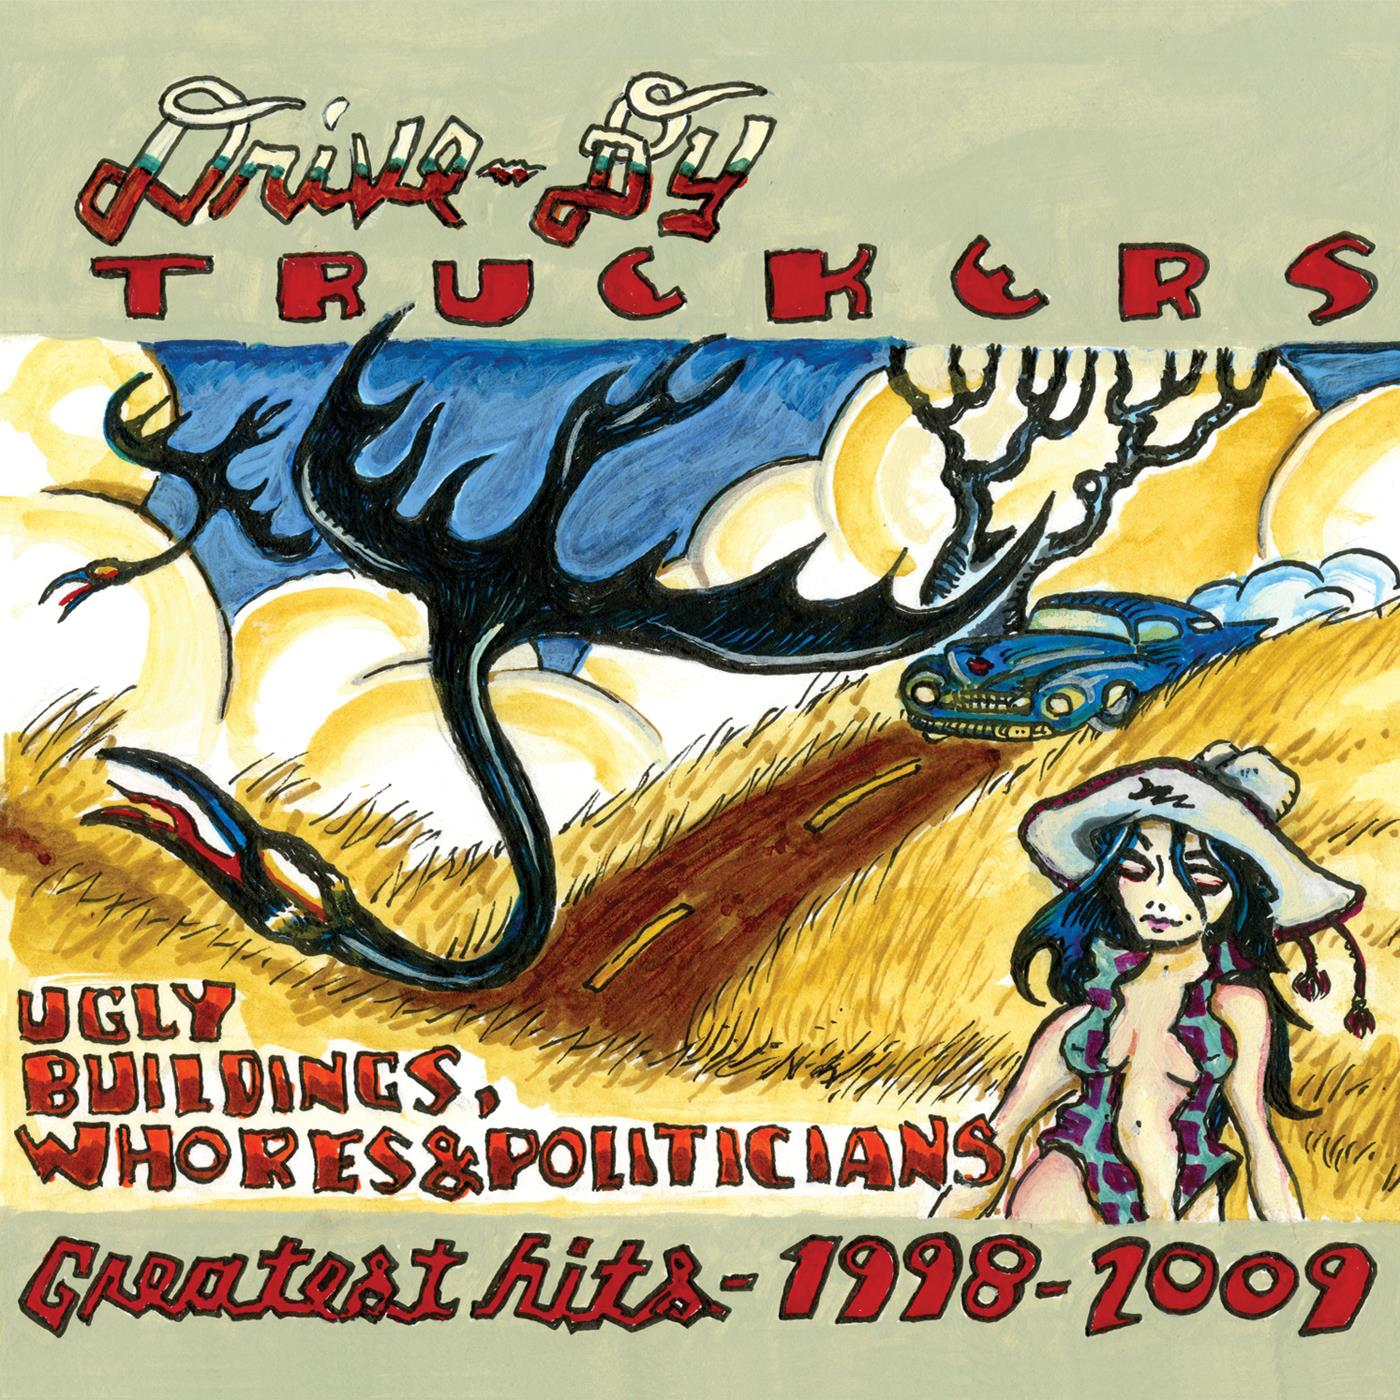 0739650292 New West  Drive-By Truckers Ugly Buildings...- Greatest Hits (2LP)